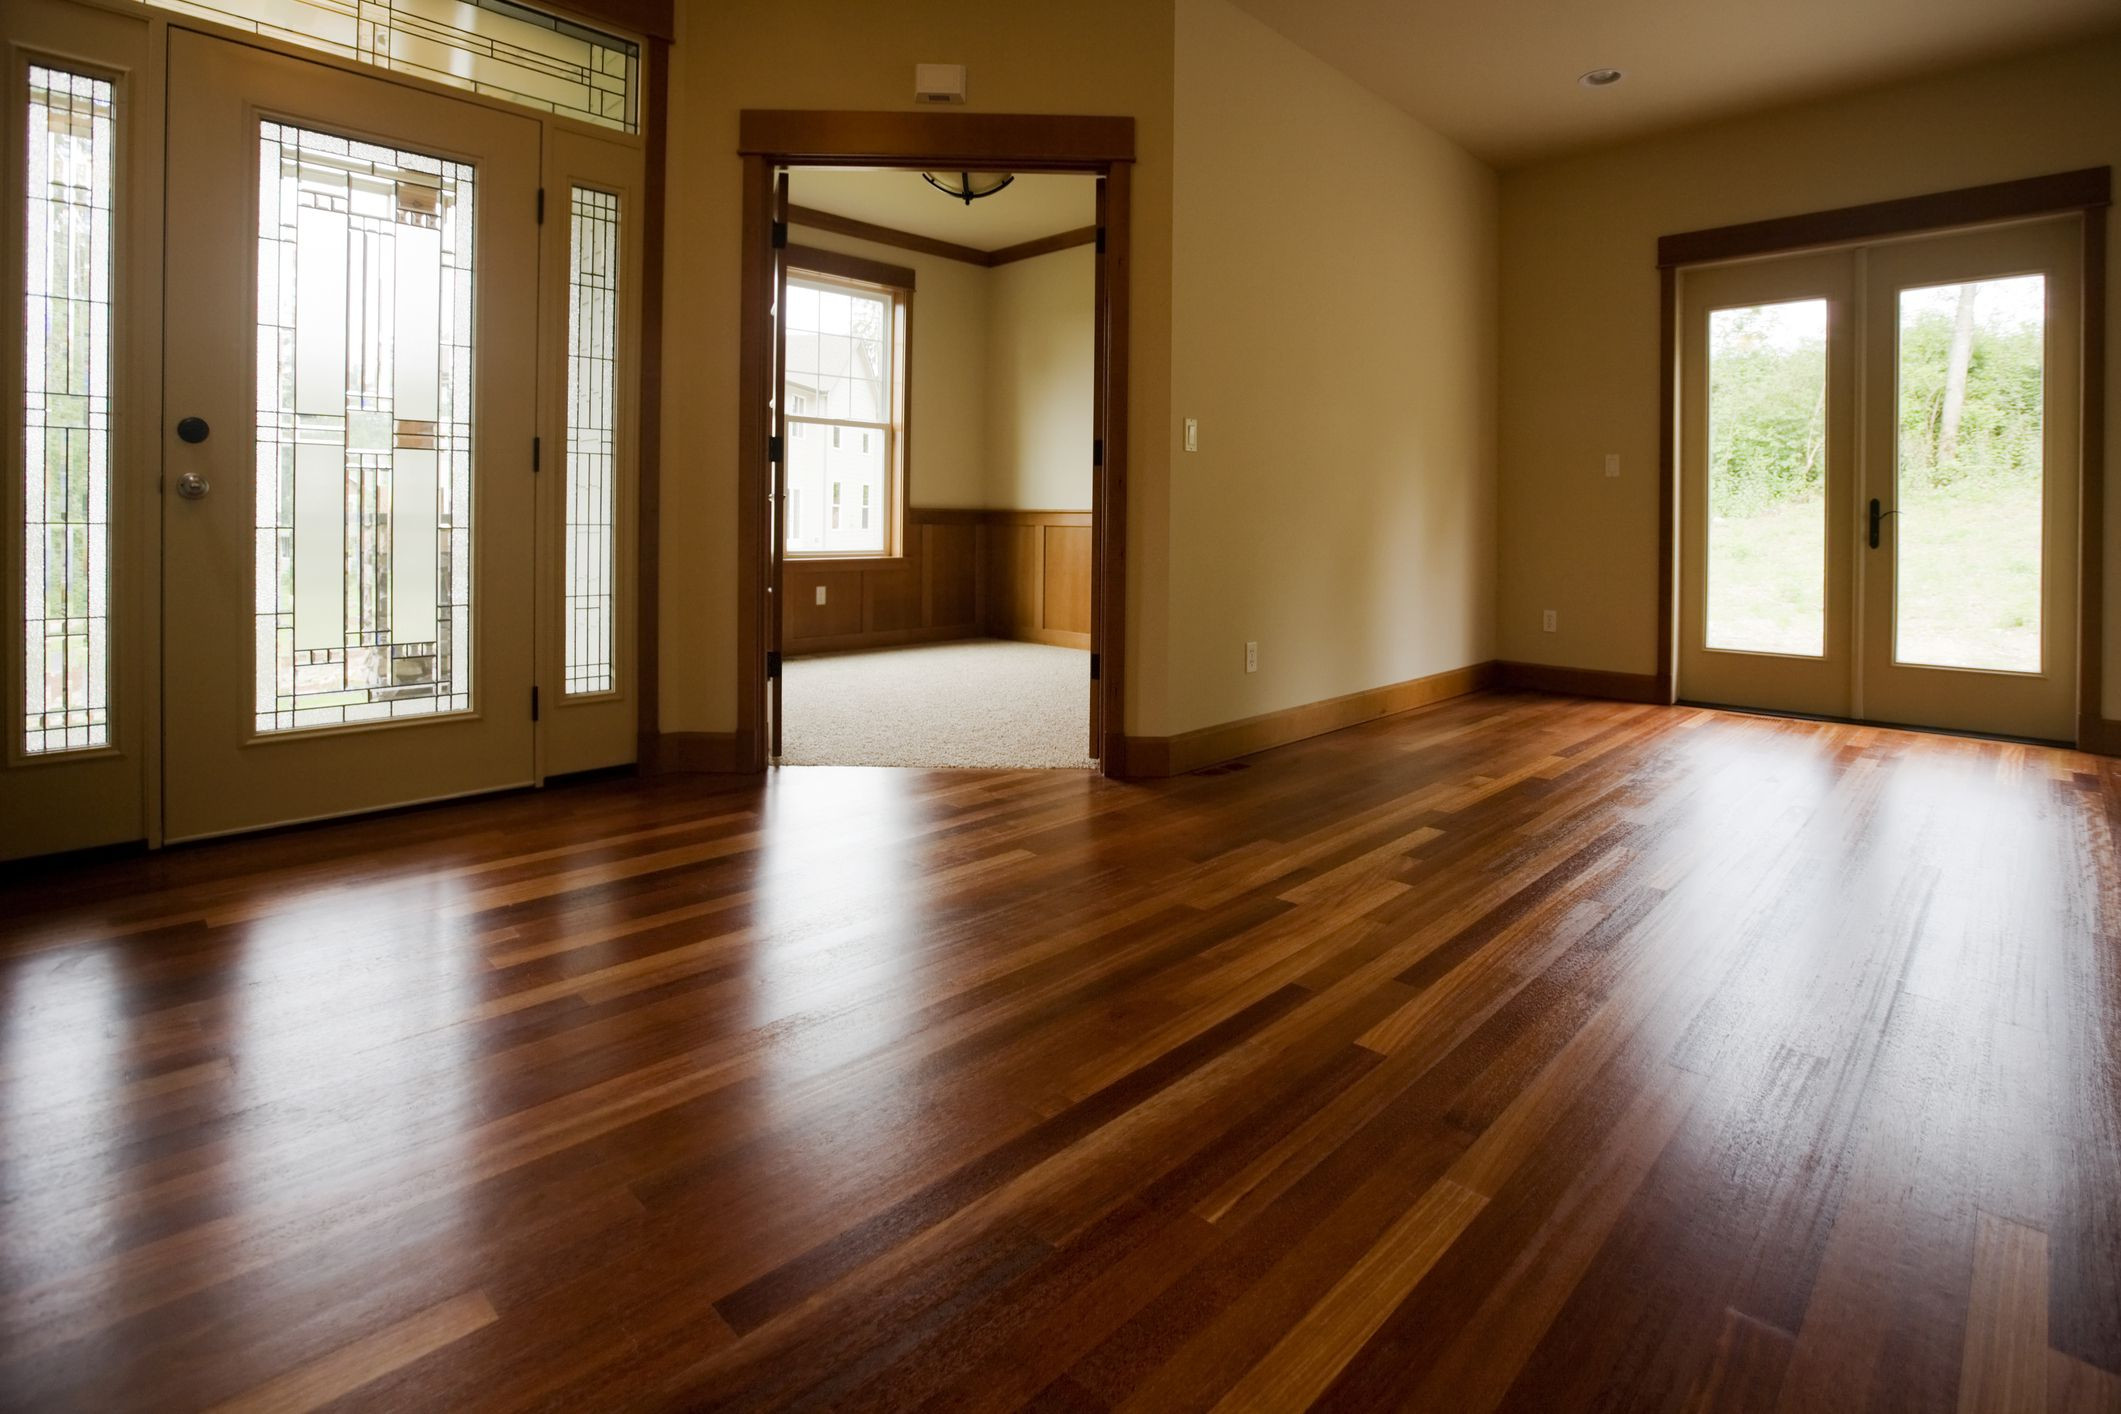 Hardwood Flooring Dimension Standards Of Types Of Hardwood Flooring Buyers Guide with Regard to Gettyimages 157332889 5886d8383df78c2ccd65d4e1